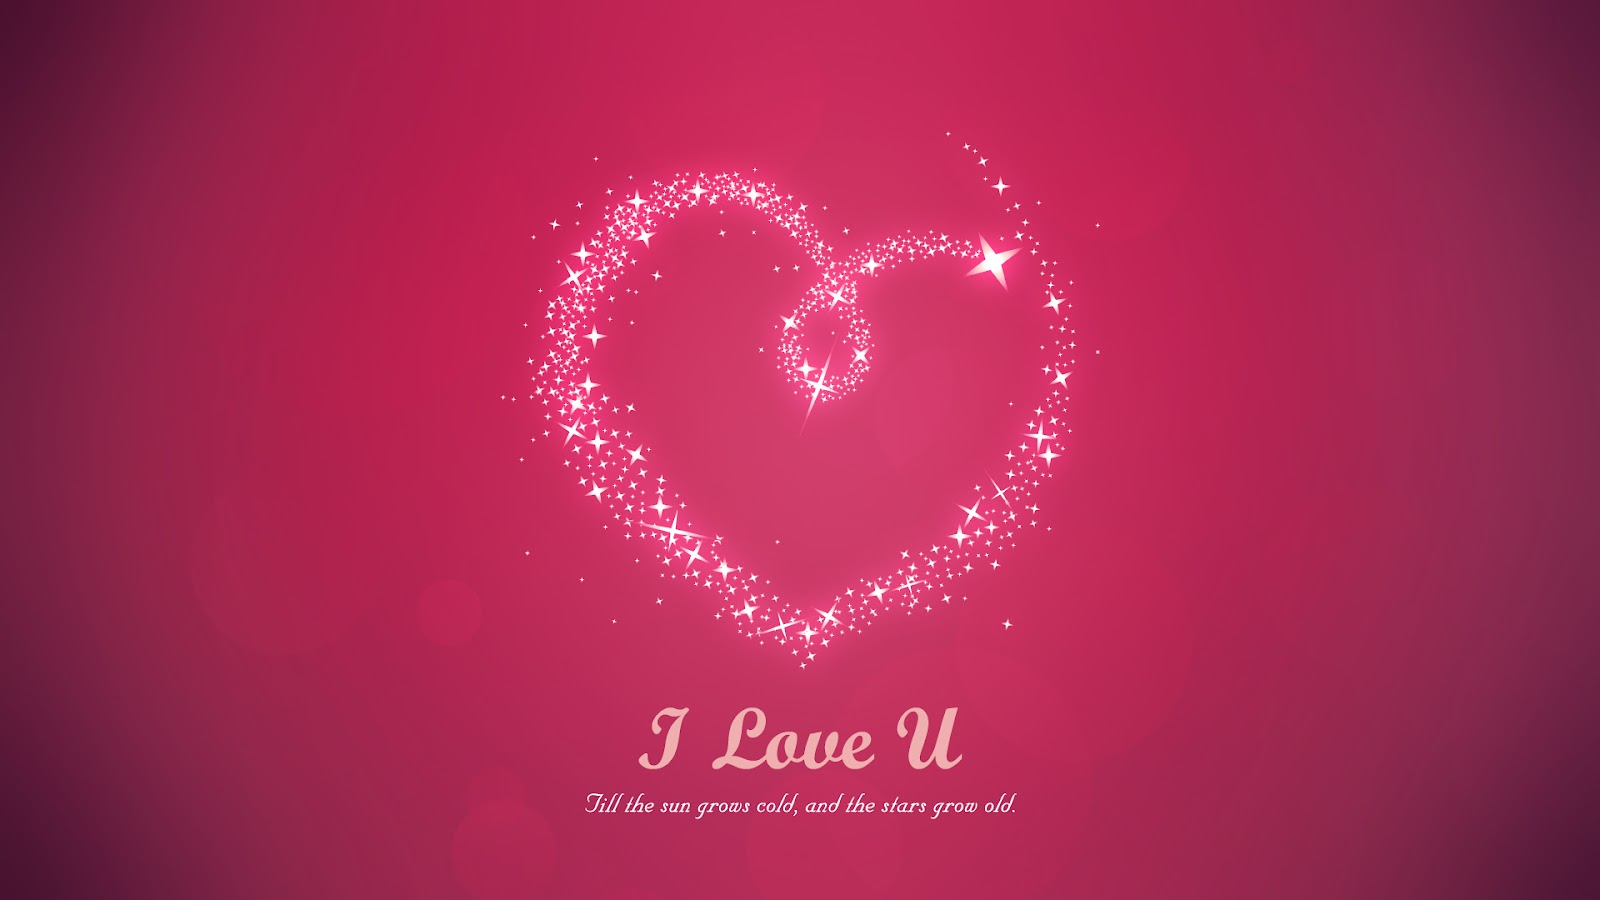 I Love U Wallpapers